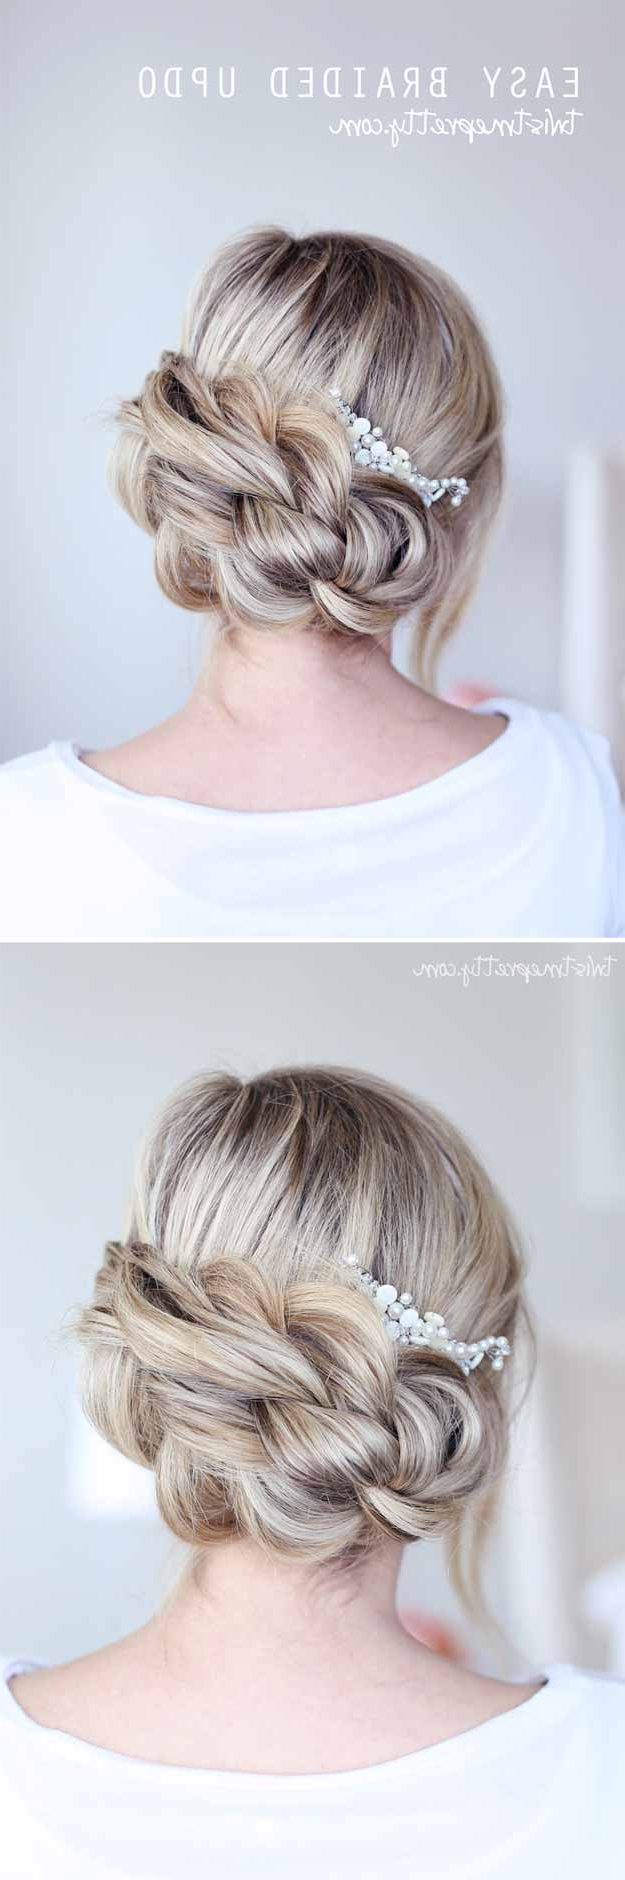 Latest Simple And Cute Wedding Hairstyles For Long Hair Throughout 31 Wedding Hairstyles For Long Hair – The Goddess (View 13 of 20)